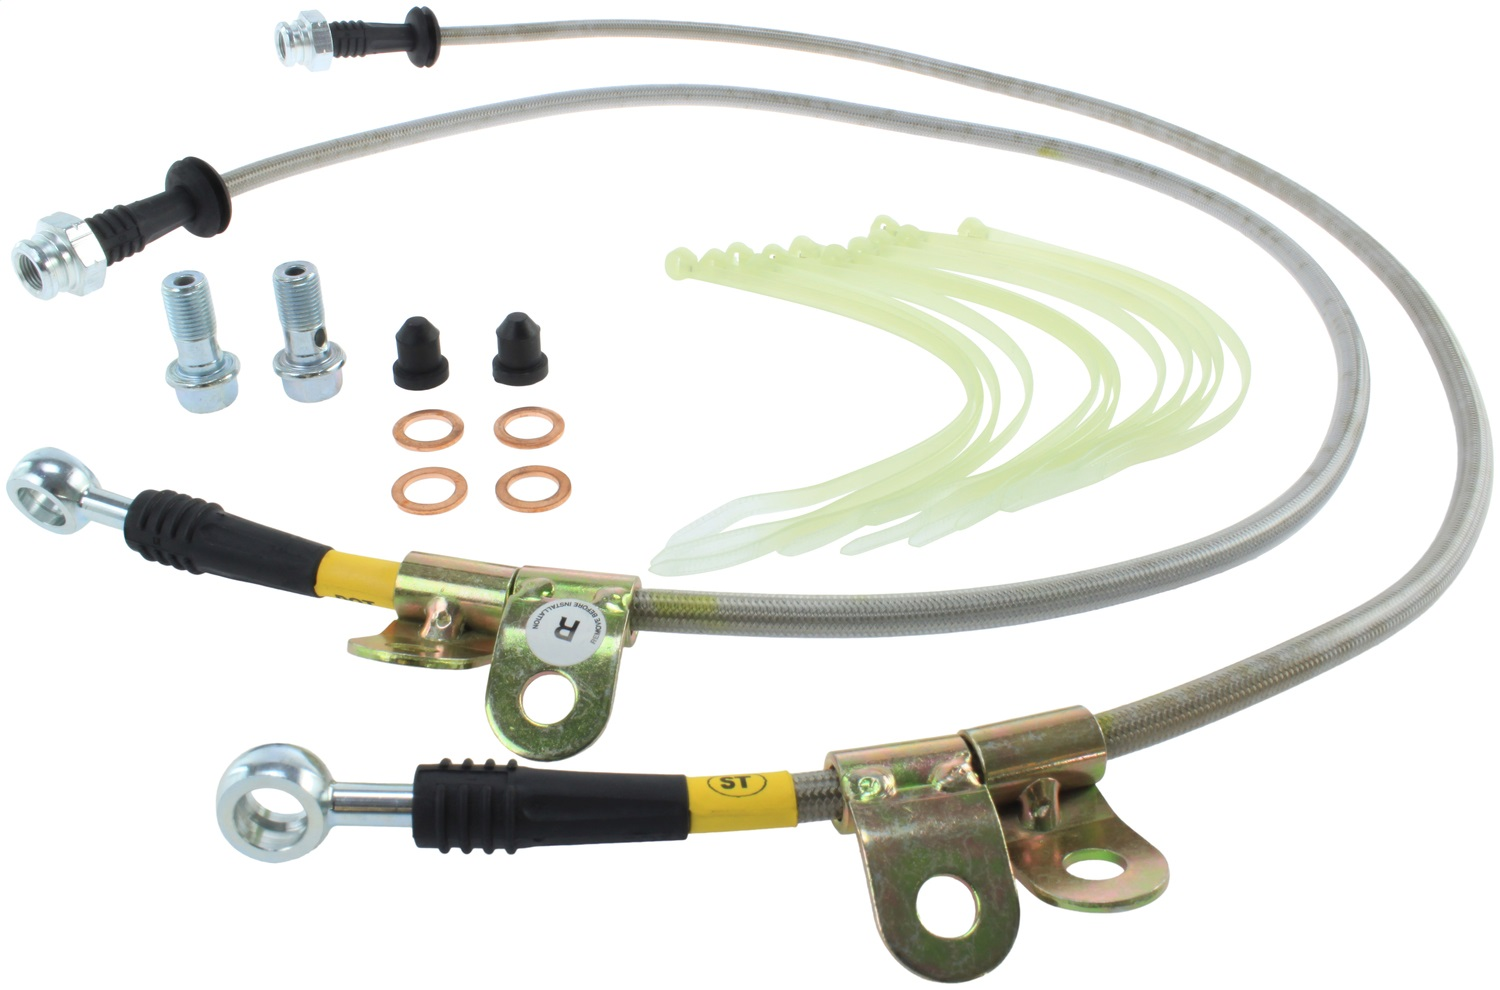 StopTech 950.22000 Stainless Steel Braided Brake Hose Kit Fits 05-09 LR3